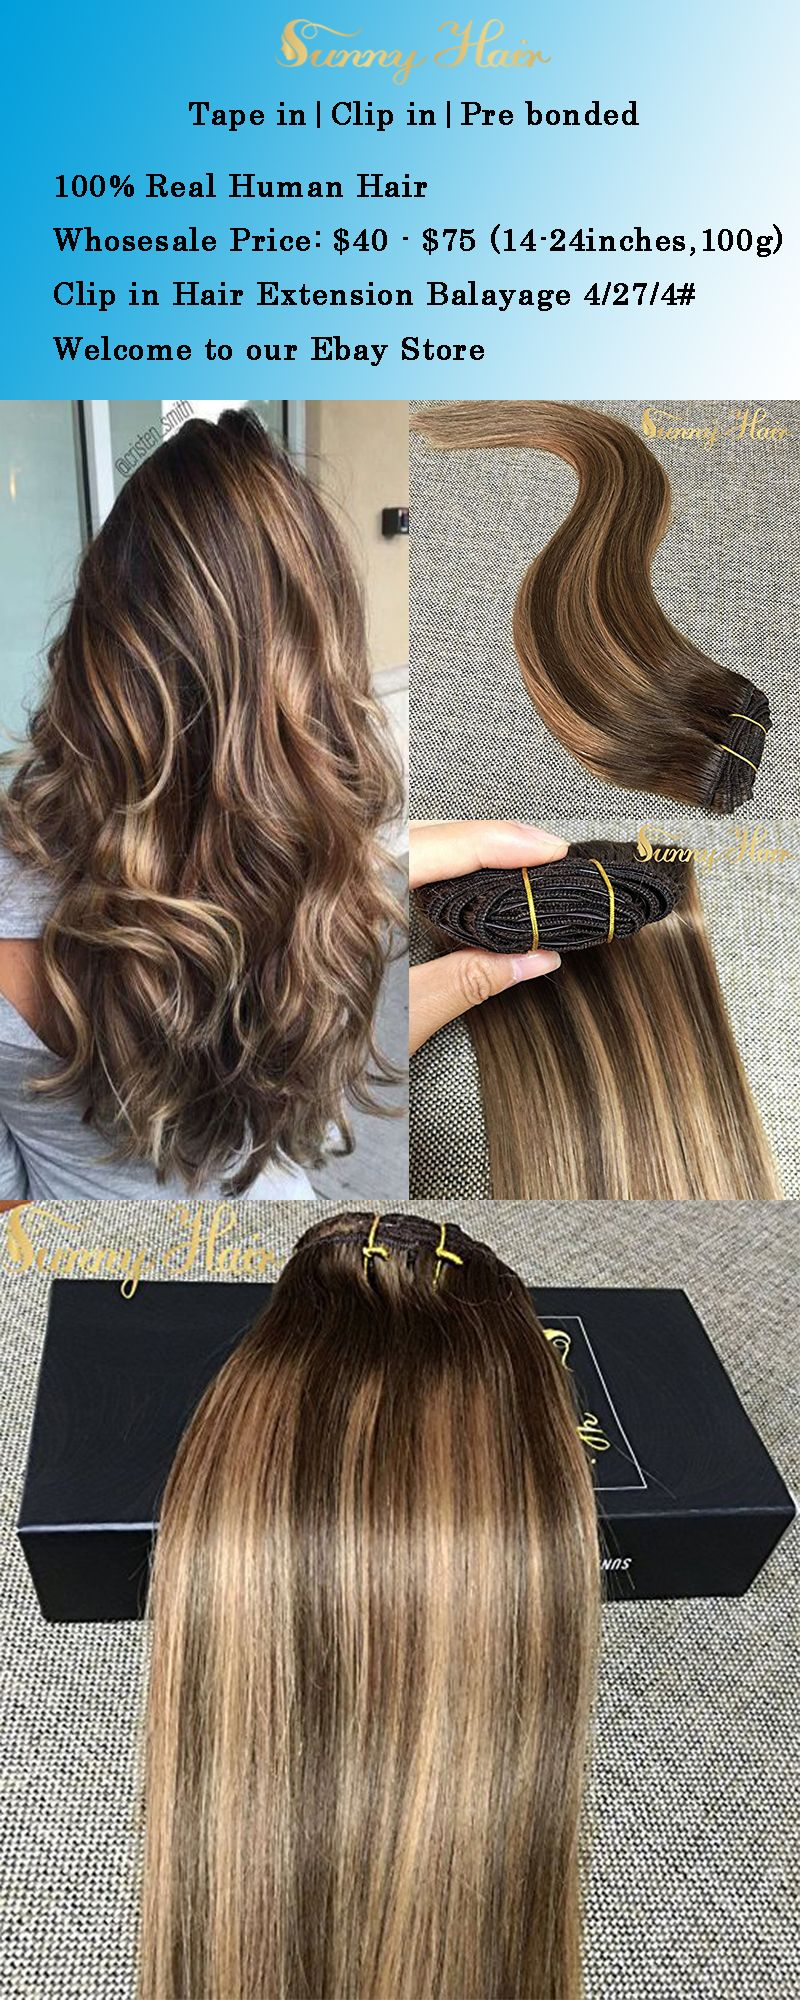 Details About Sunny Clip In Human Hair Extensions Balayage Dark